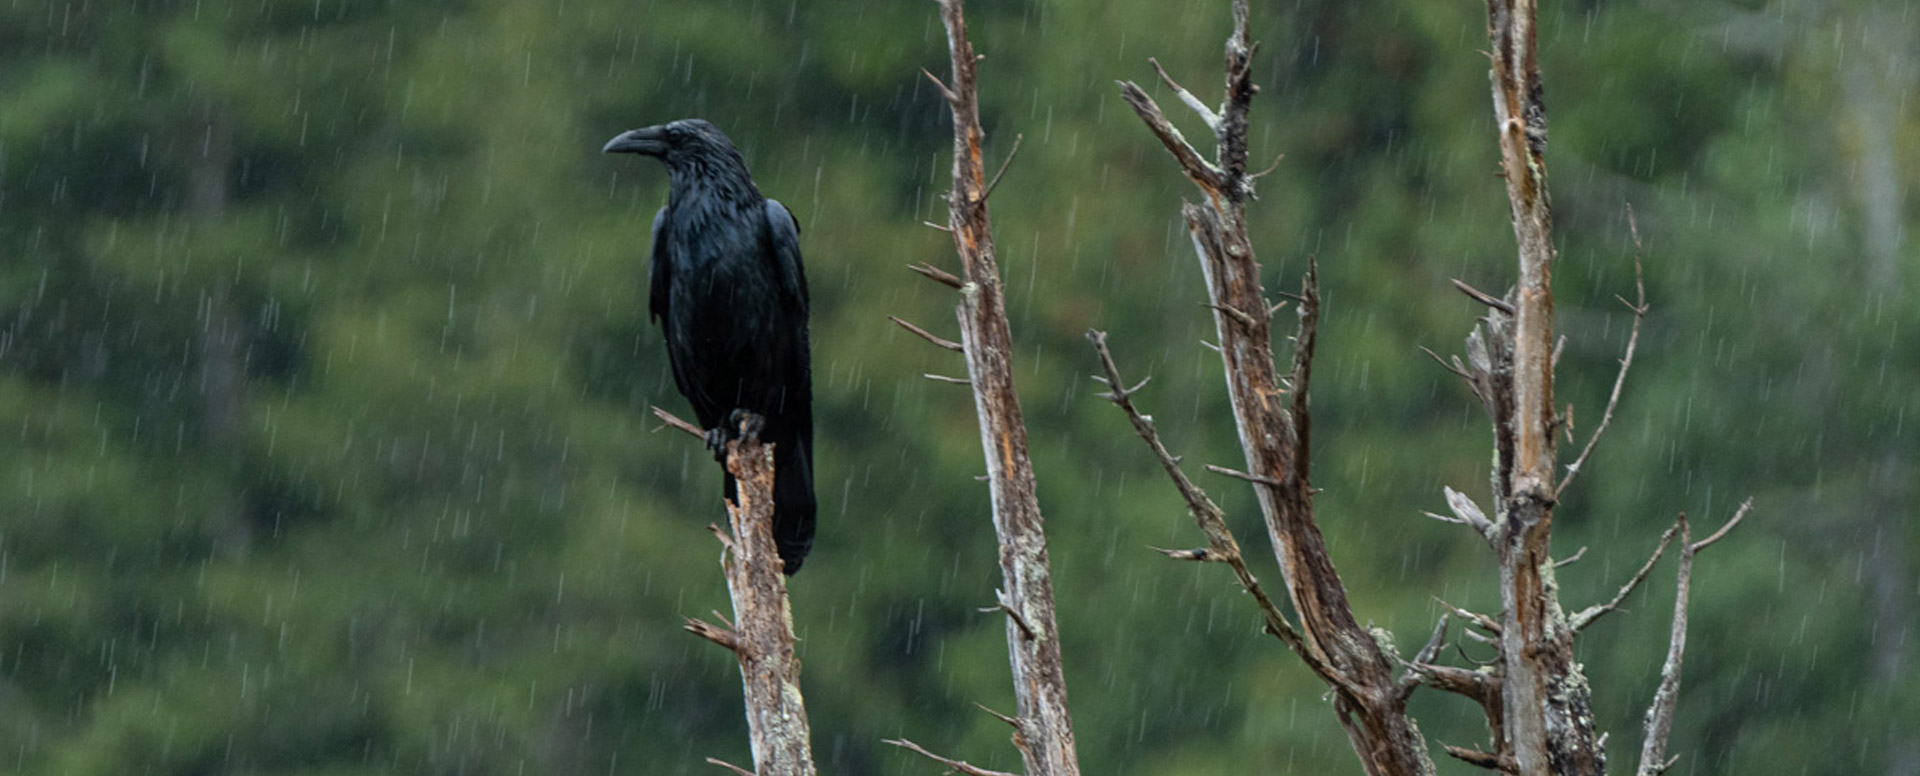 Raven in the rain Johnstone Strait